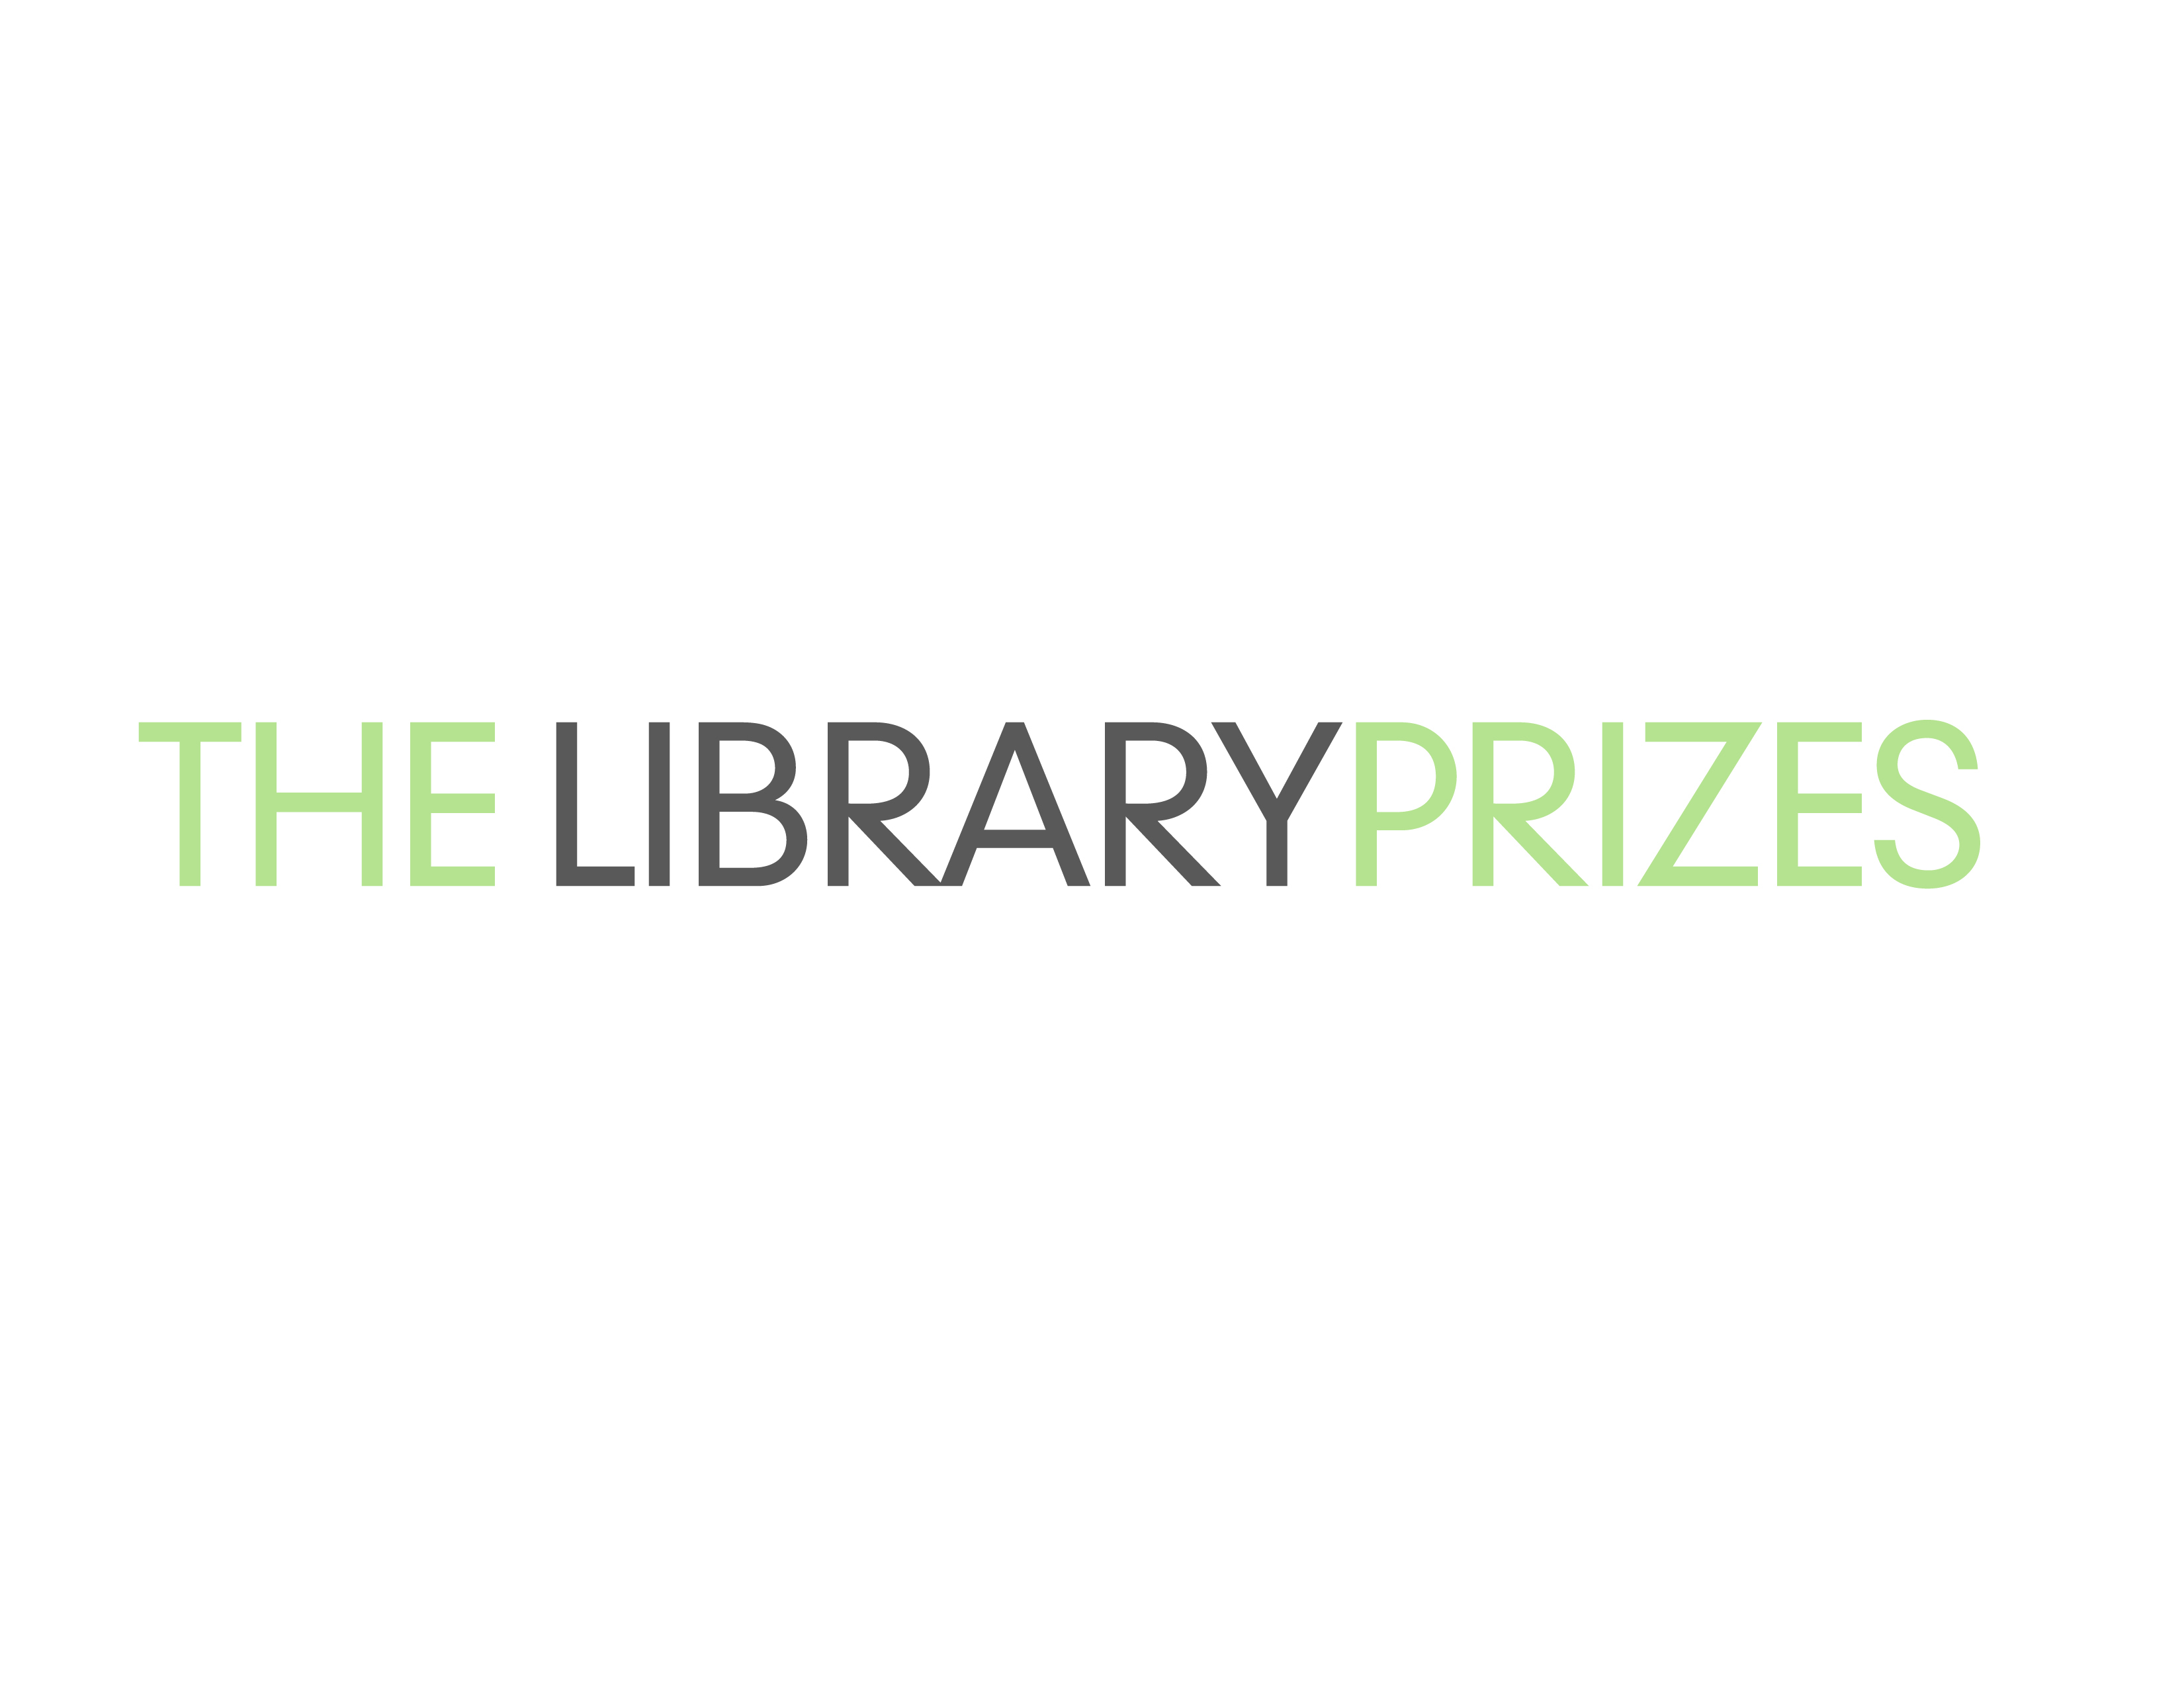 Home - Library Prize for Undergraduate Research - Research Guides at Temple University